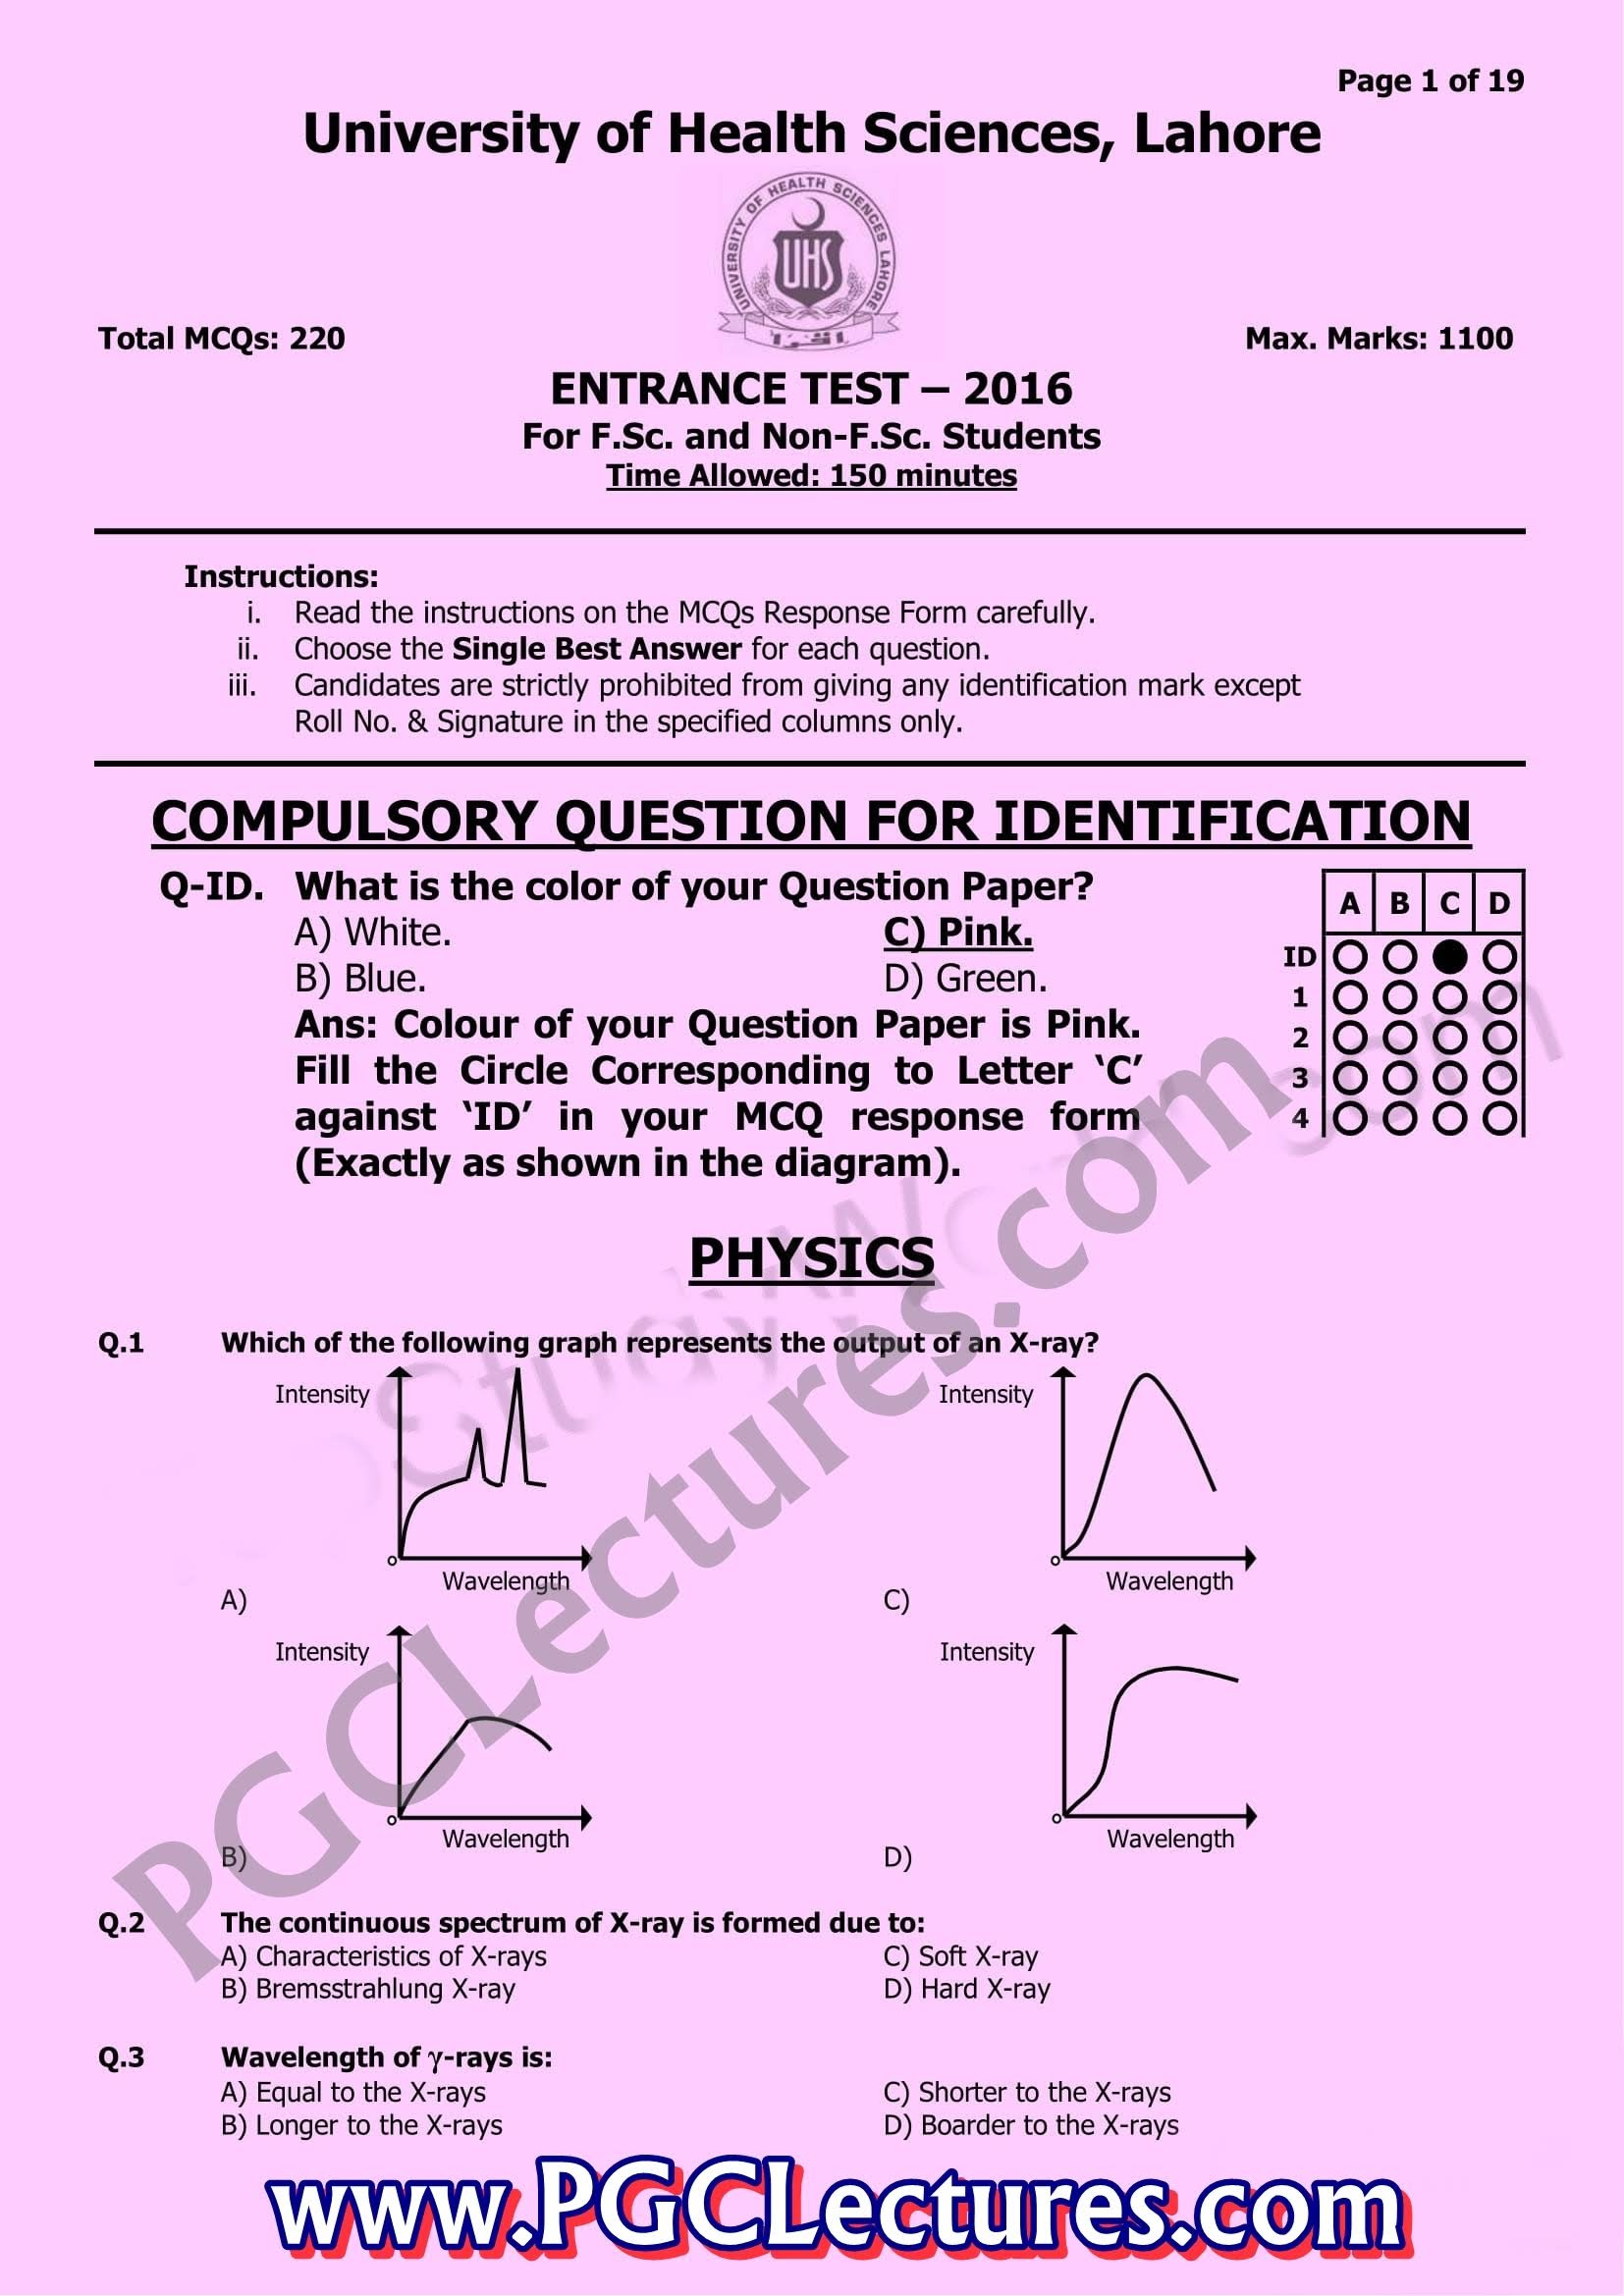 MCAT Past Paper 2016 UHS by PGC Lectures PGC Lectures -